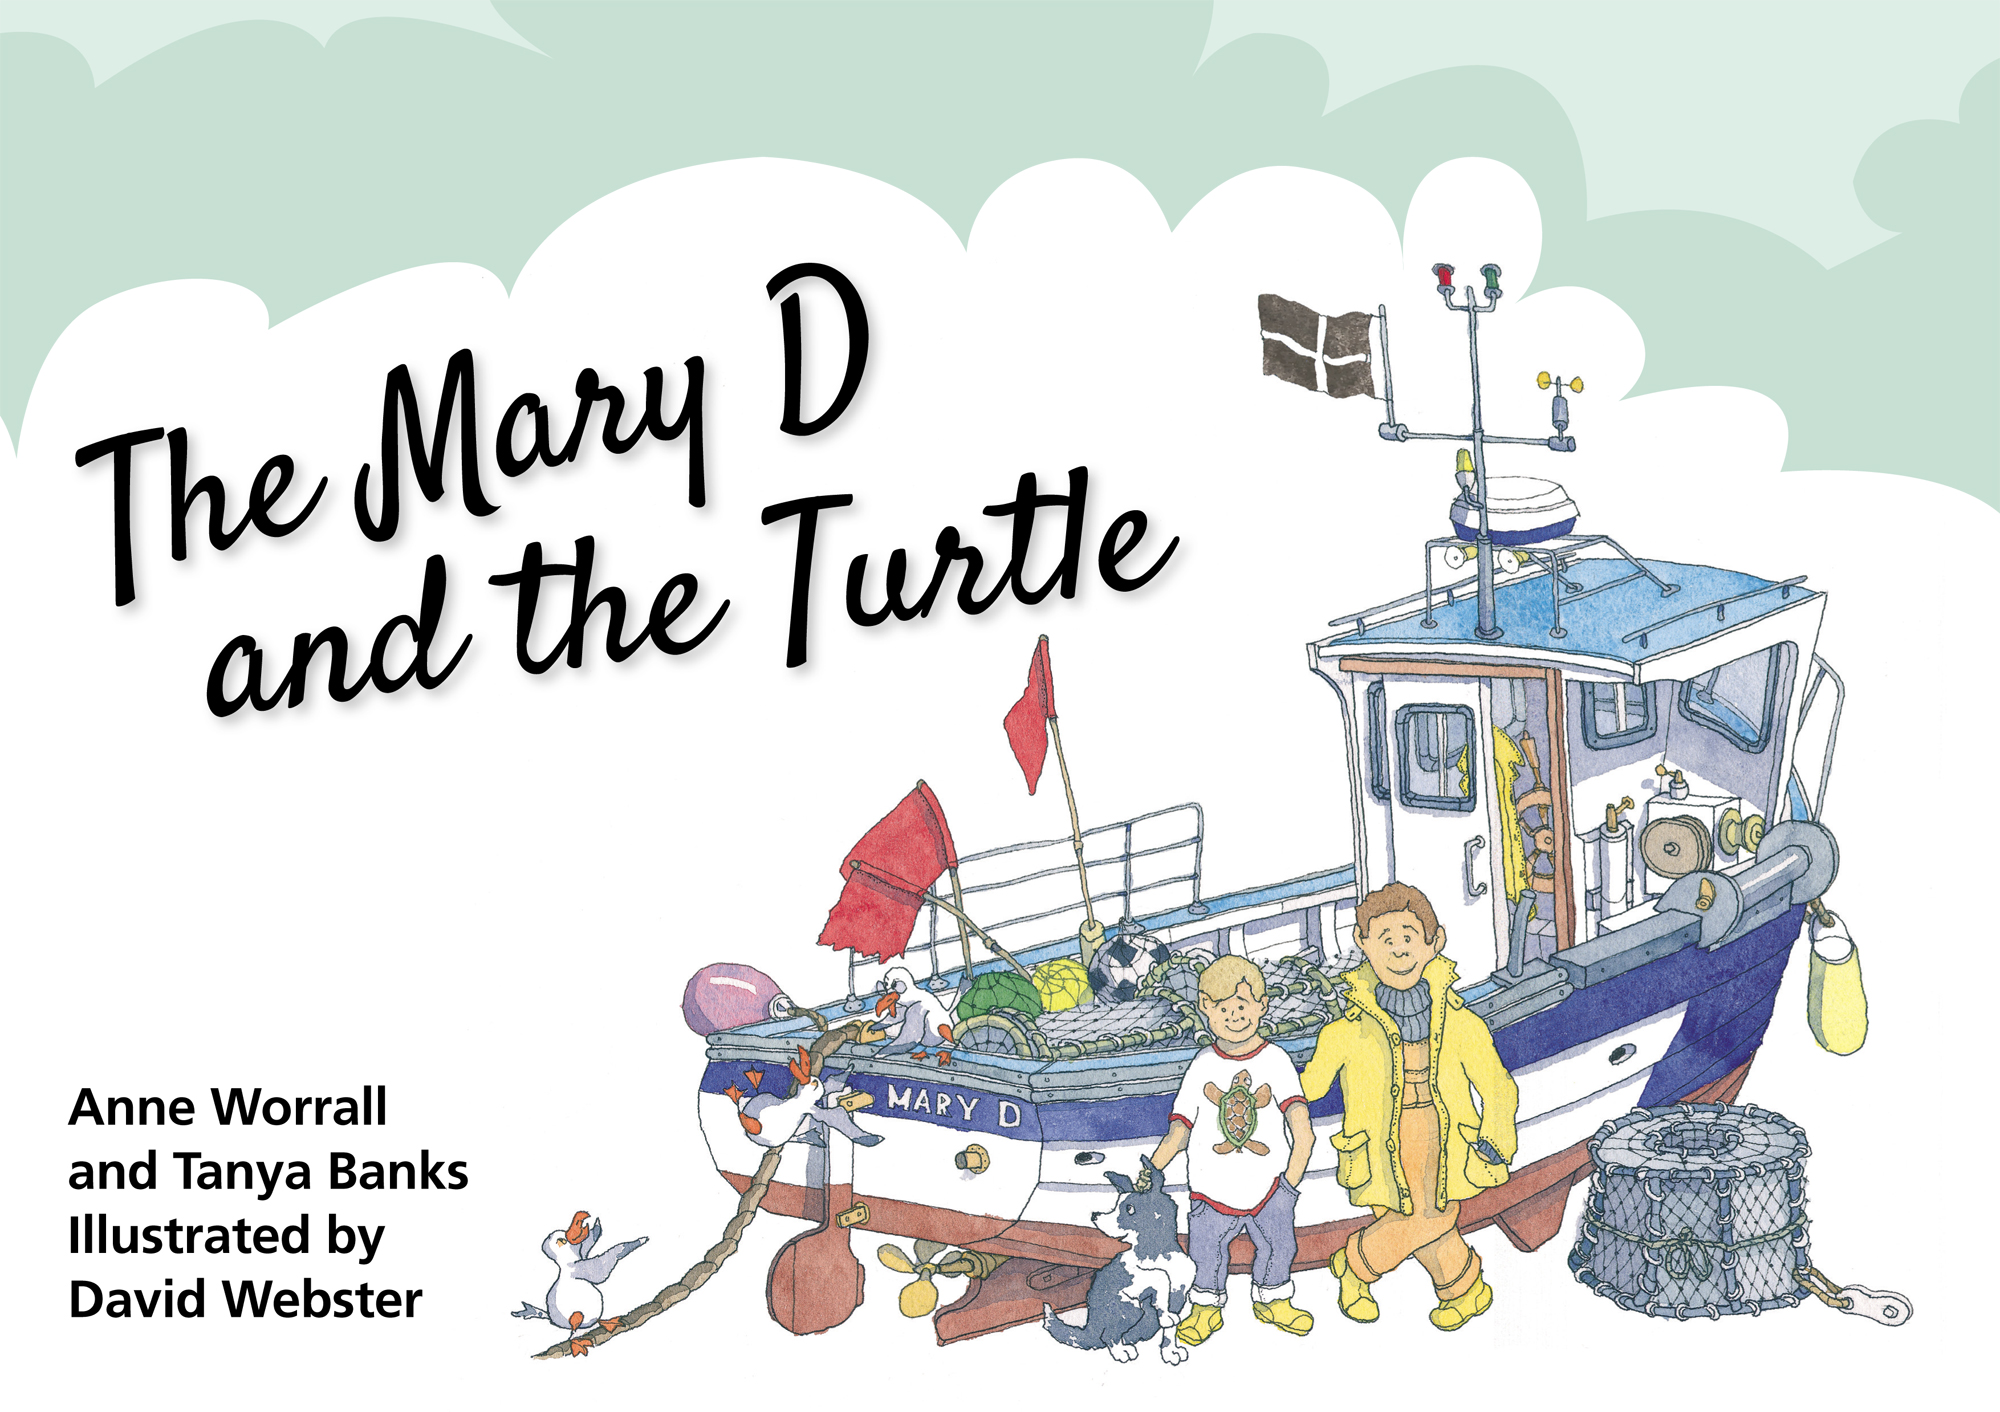 Mary-D-and-the-Turtle-Cover-1